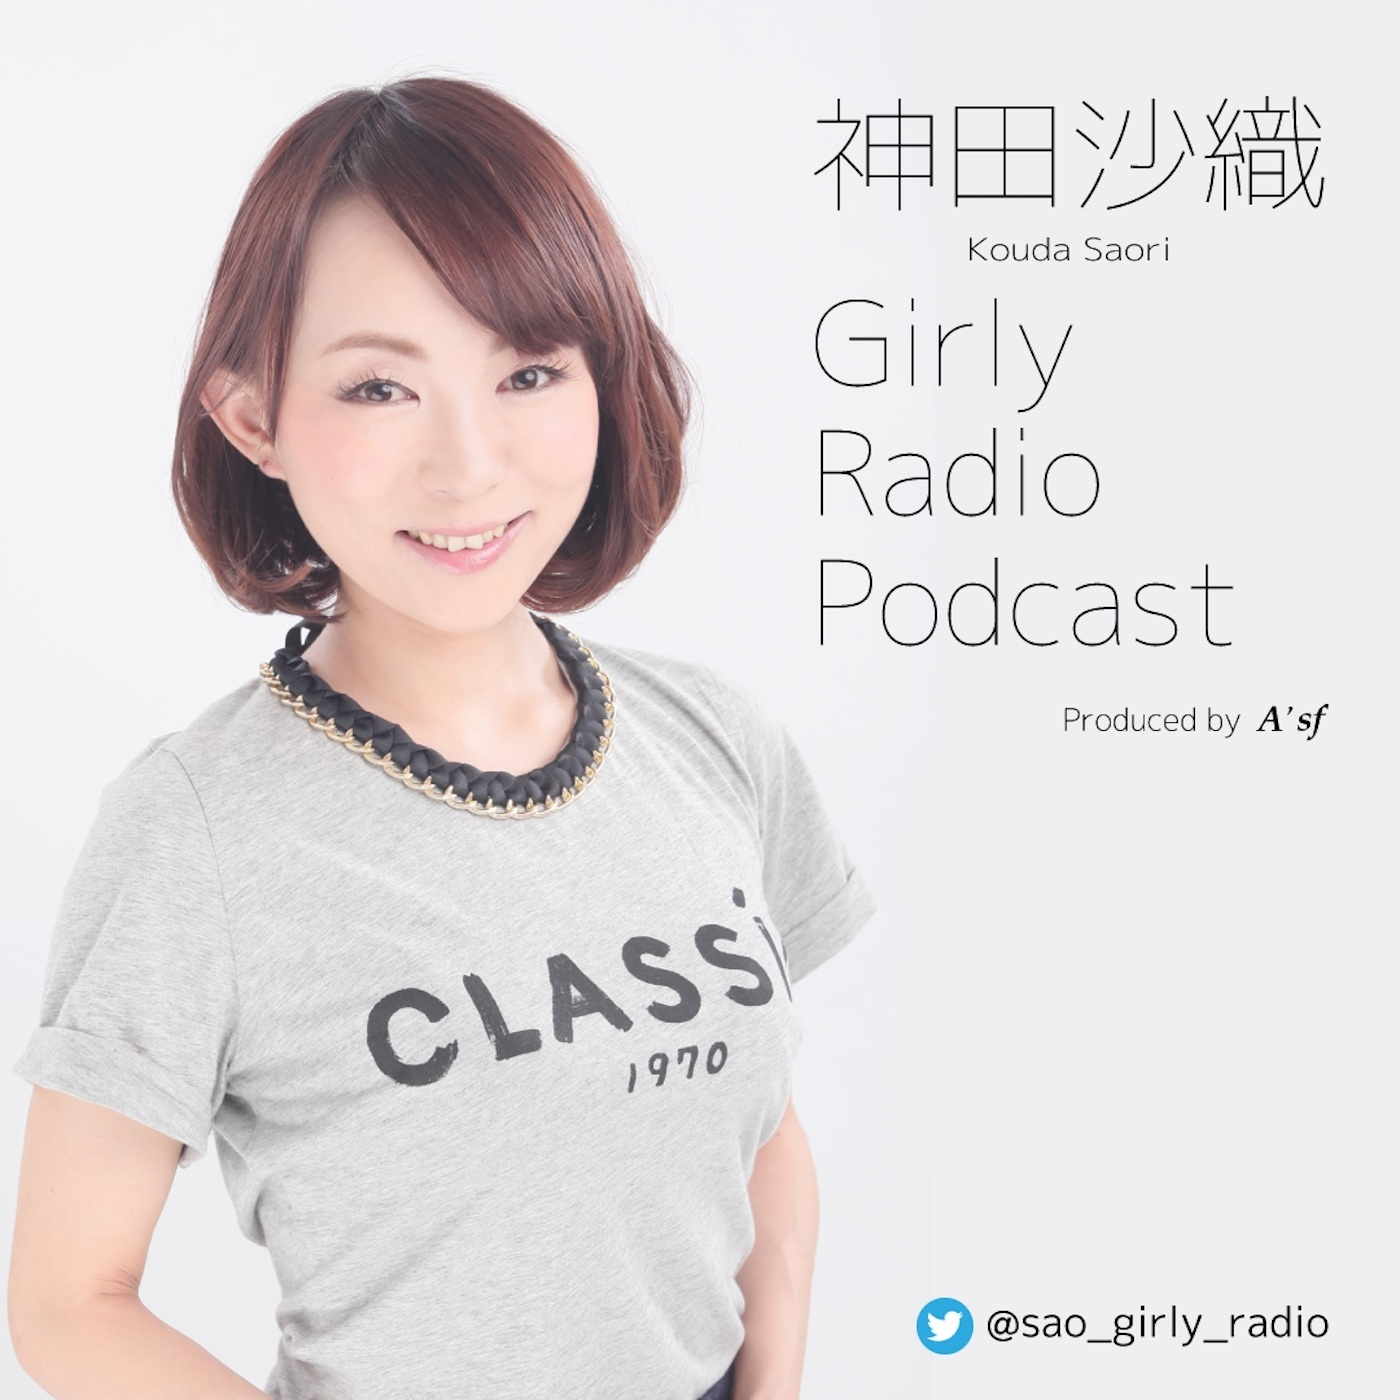 Girly Radio Podcast